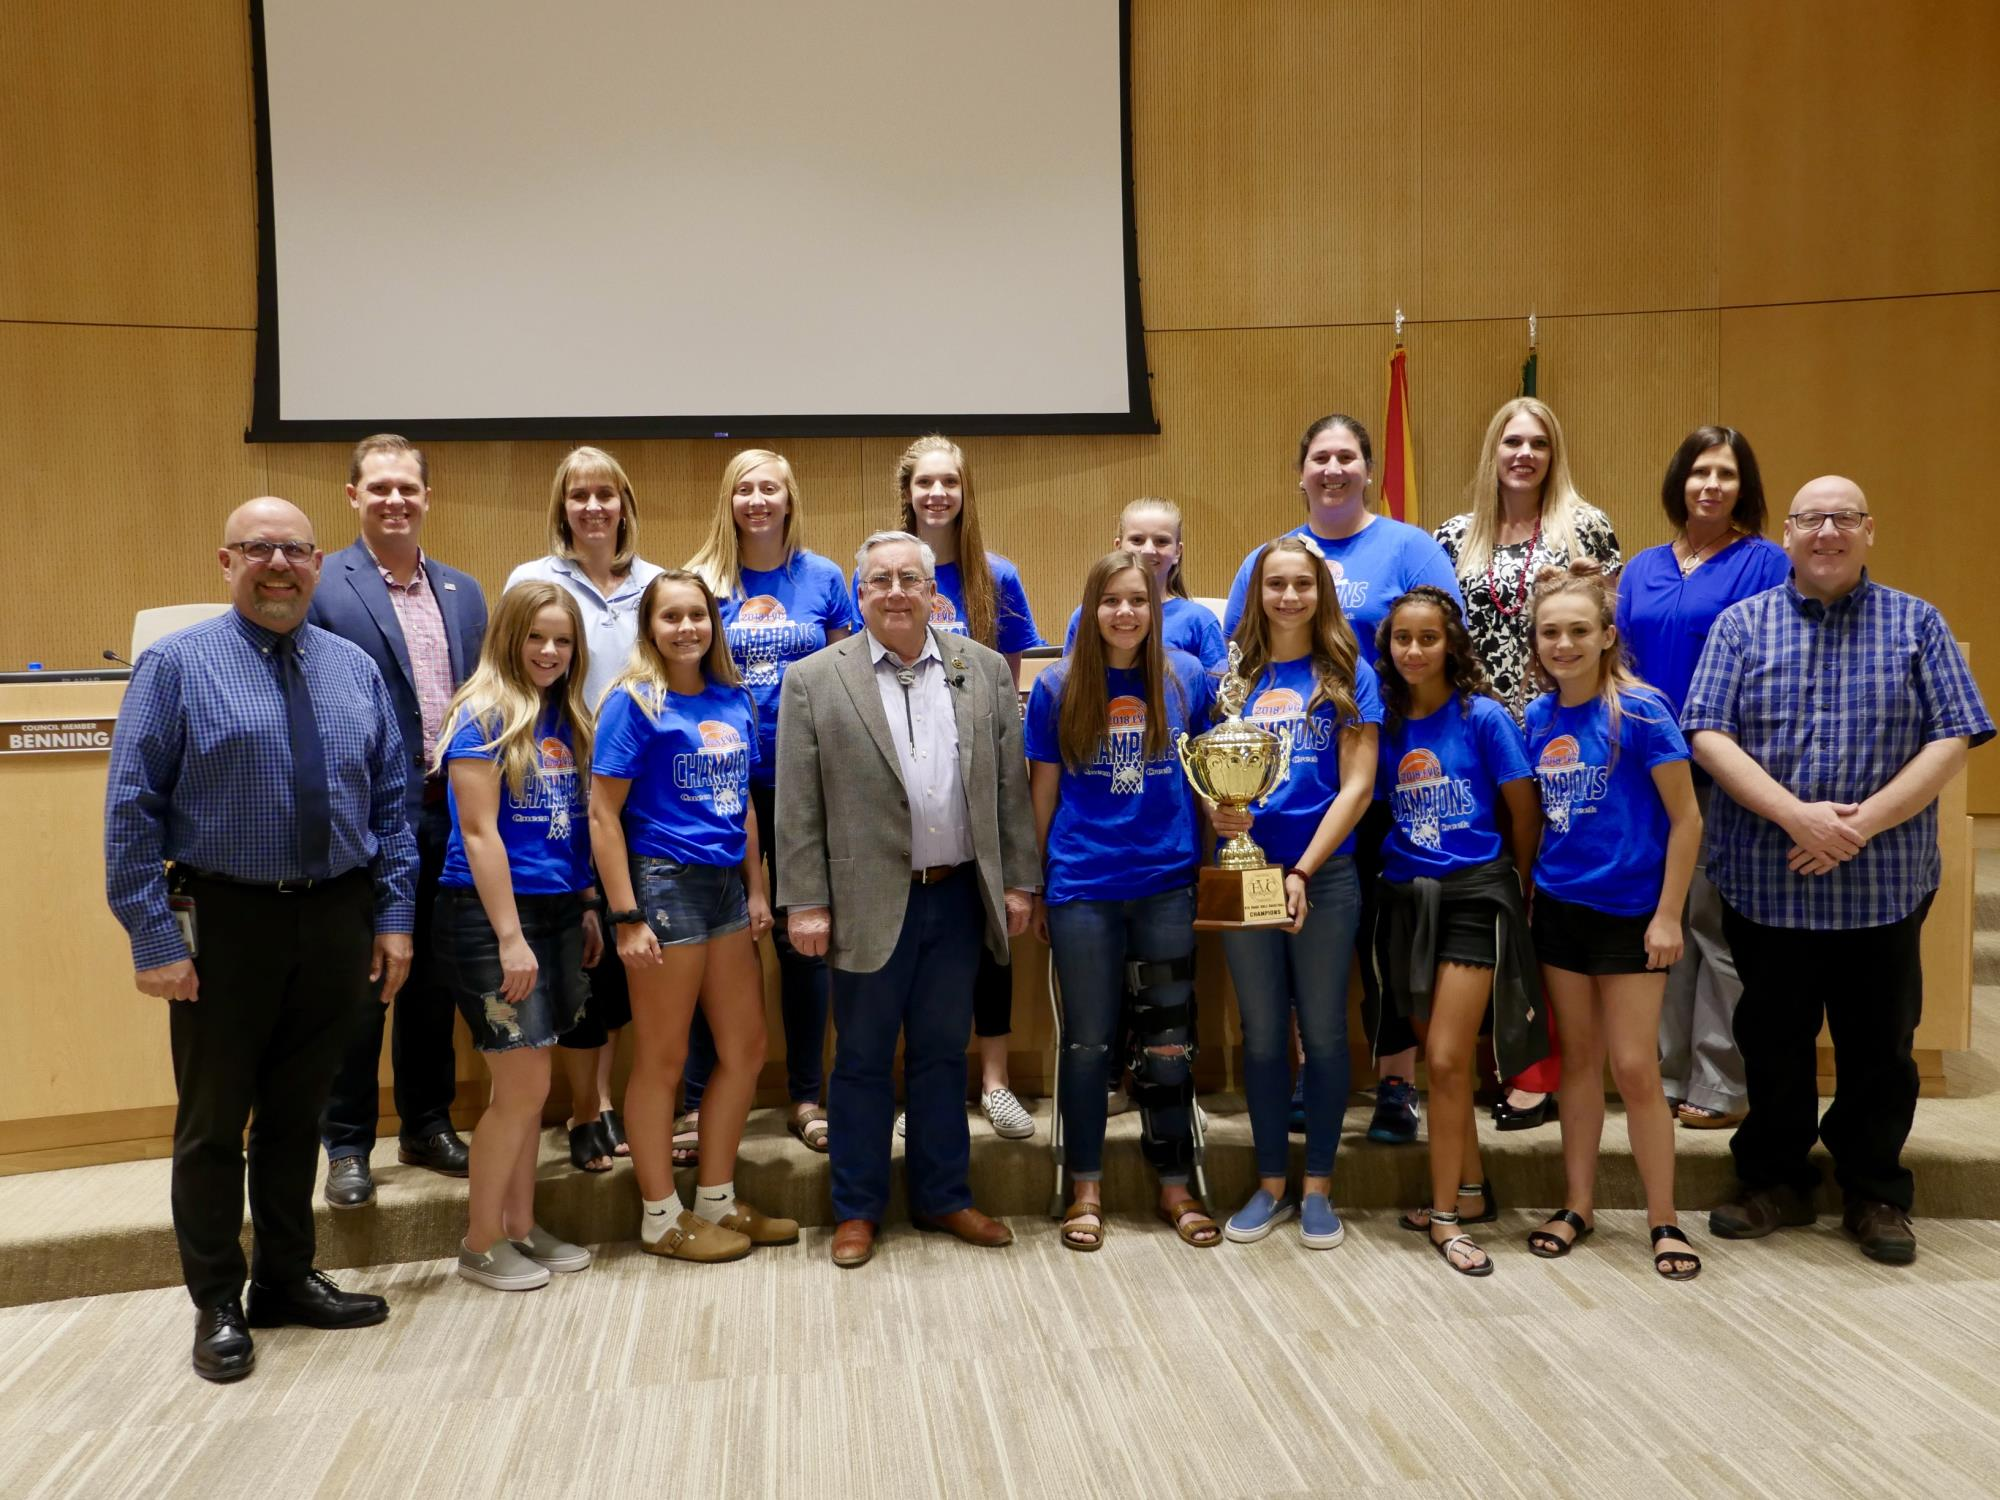 Mayor Barney and the Town Council with the Queen Creek Middle School 8th Grade Women's State Champion Basketball Team at the May 16 Town Council Meeting